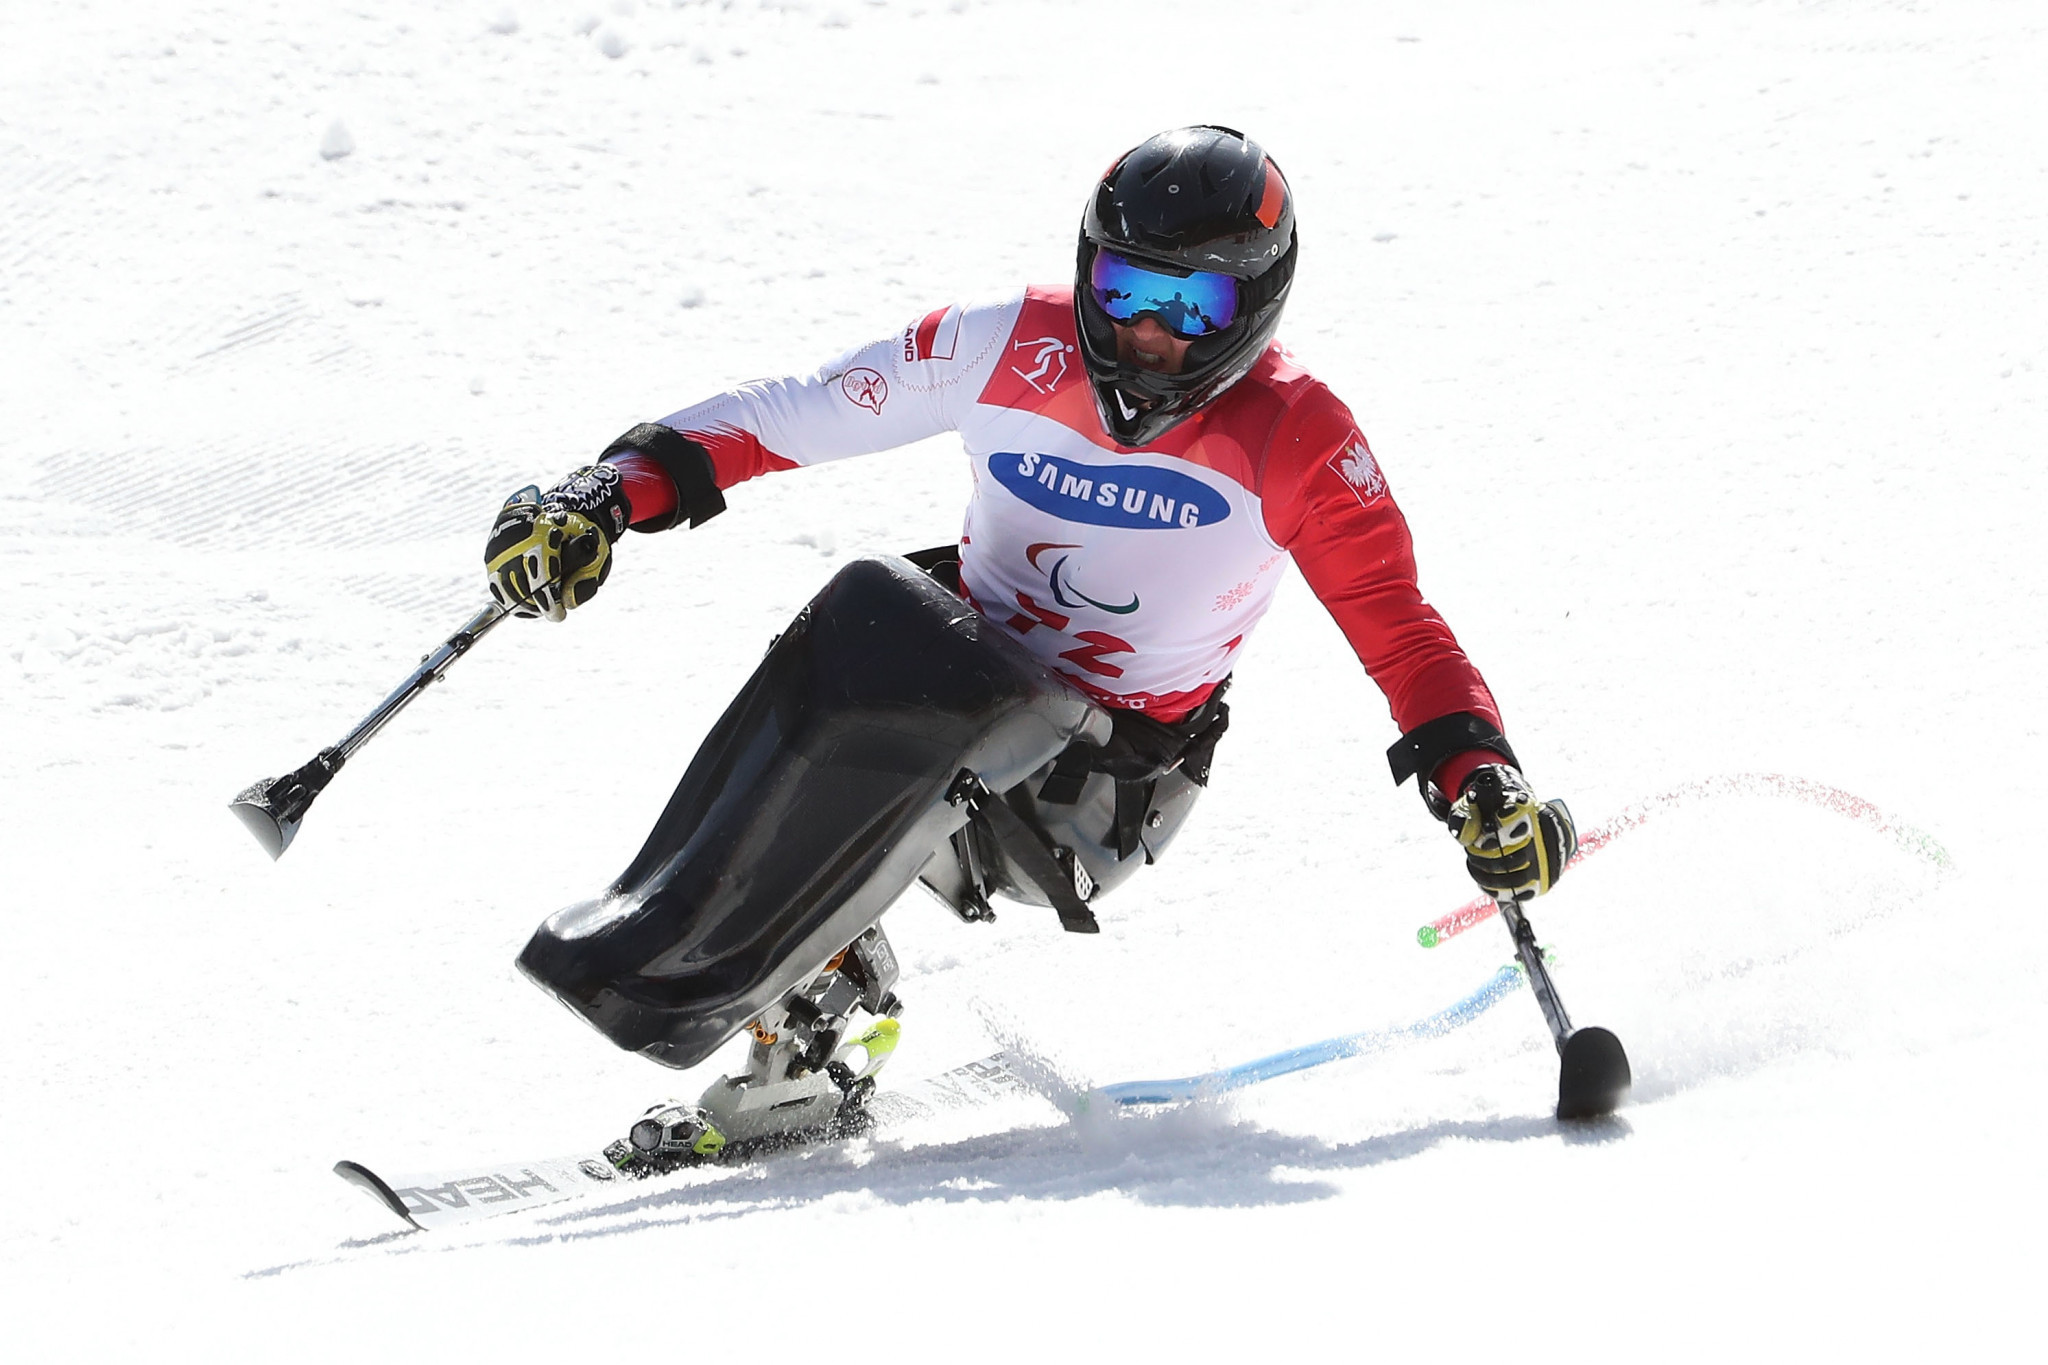 Igor Sikorski of Poland triumphed in the men's sitting giant slalom at the World Para Alpine Skiing World Cup ©Getty Images